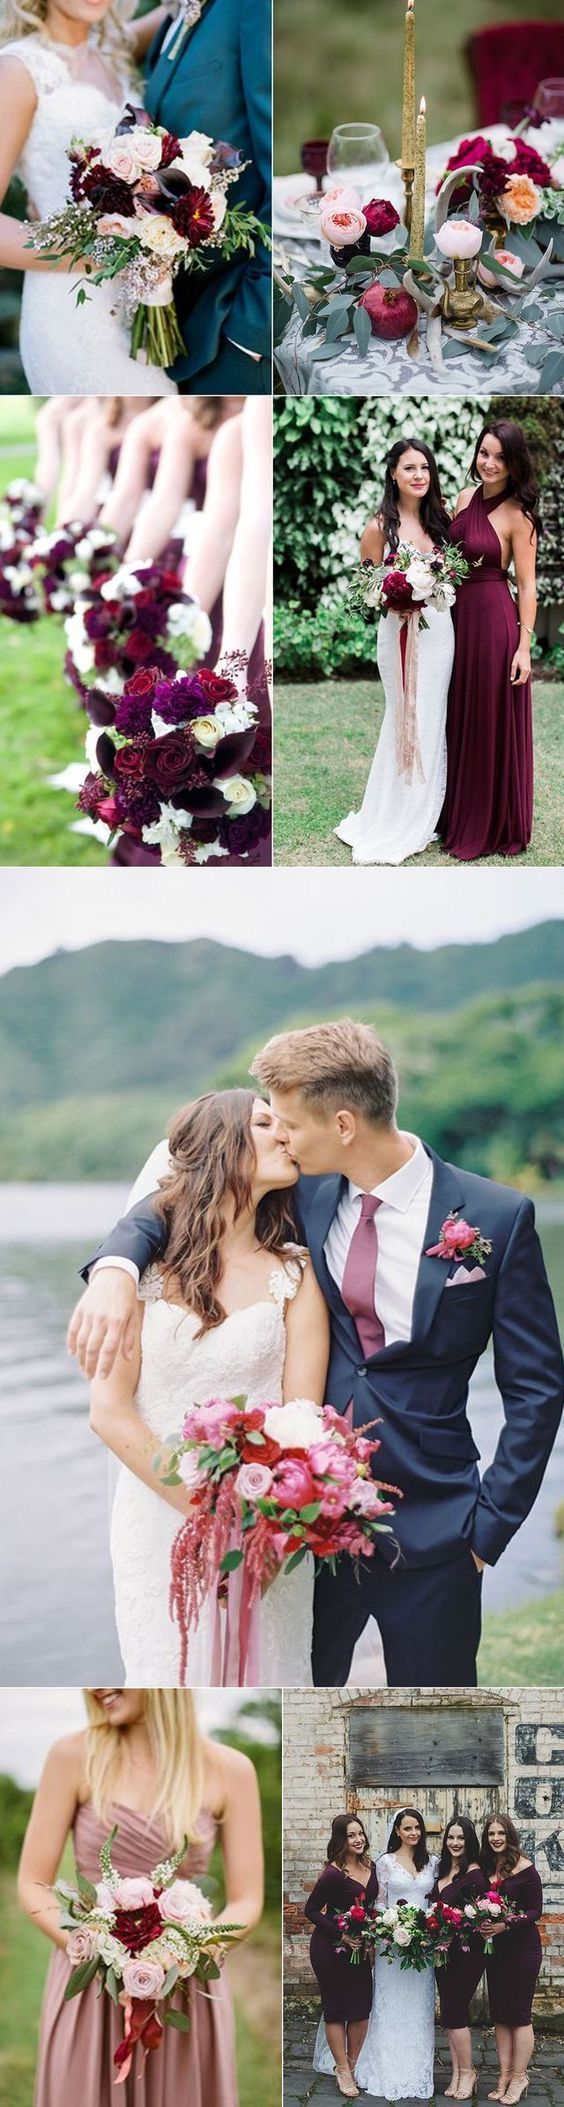 Maroon and blue wedding decor   best Red  wedding ideas images on Pinterest  Flower